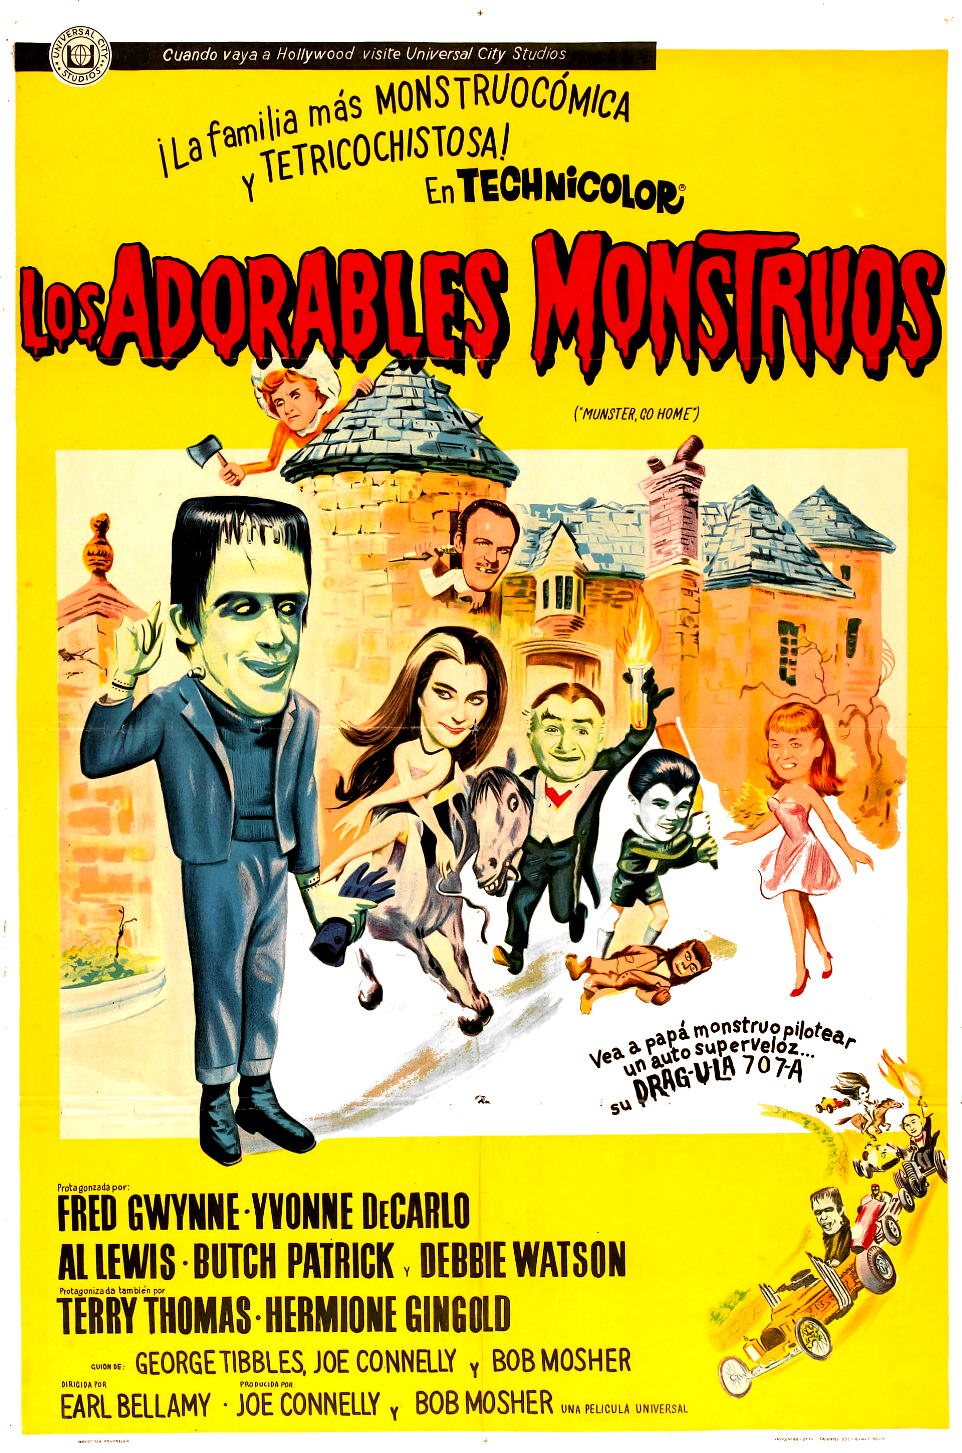 Los Adorables Monstruos | Munster Go Home | Latino | 1966